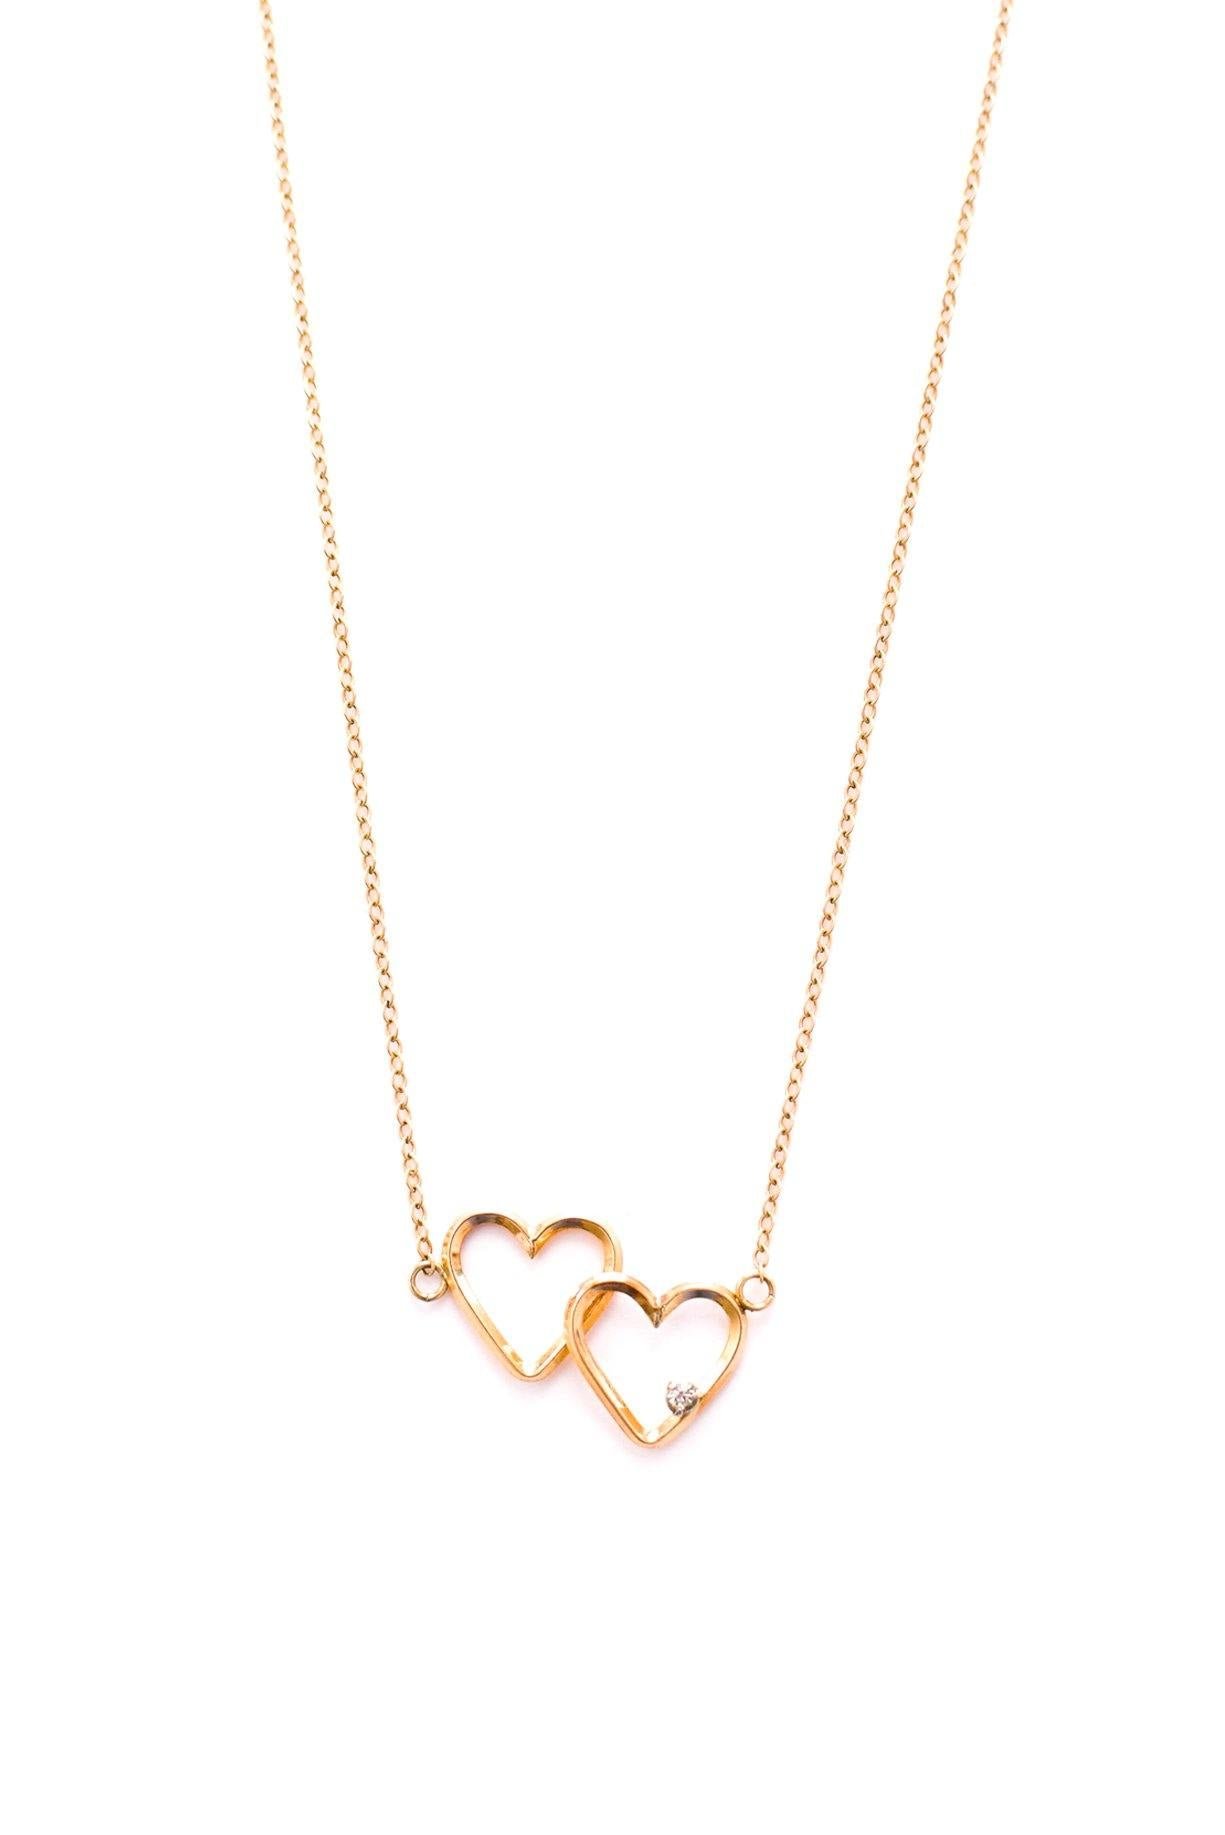 Vintage Krementz double heart necklace from Sweet & Spark.